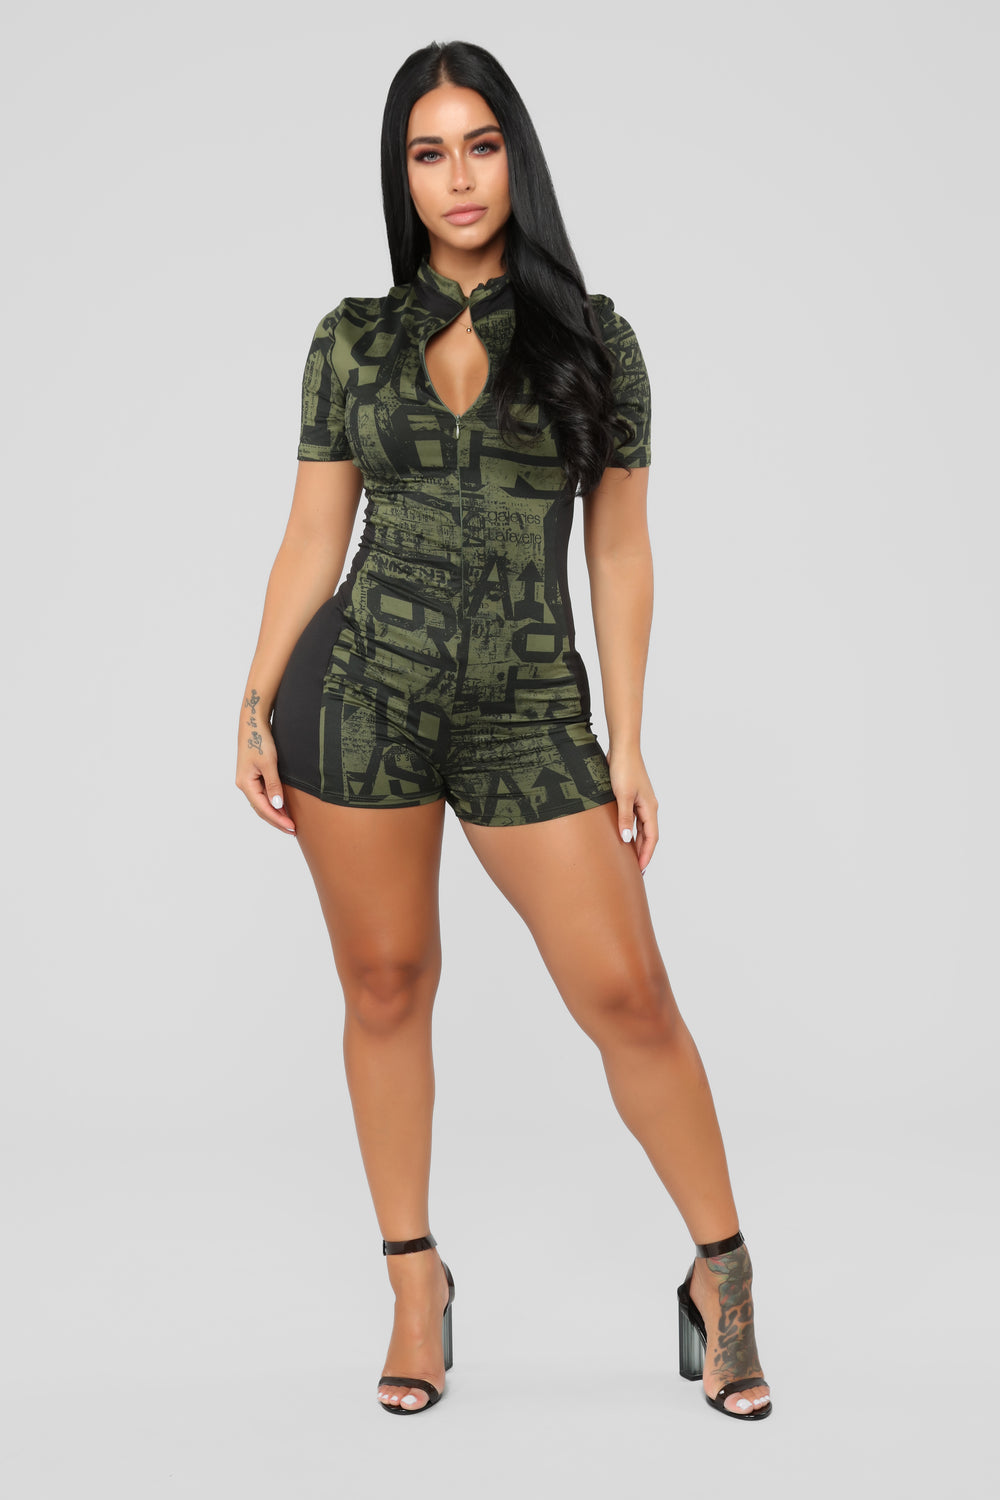 Nothin' Goin' On Romper - Olive